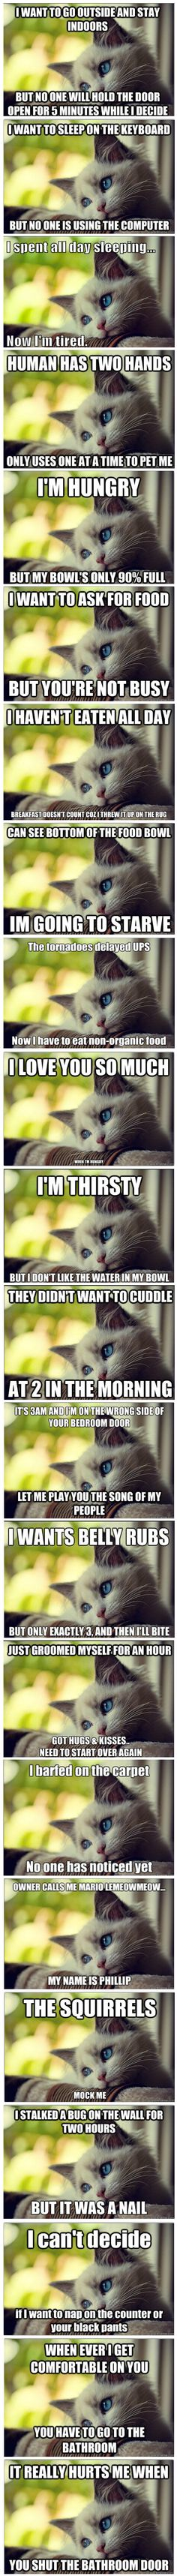 First World Cat Problems...So true, every one of them